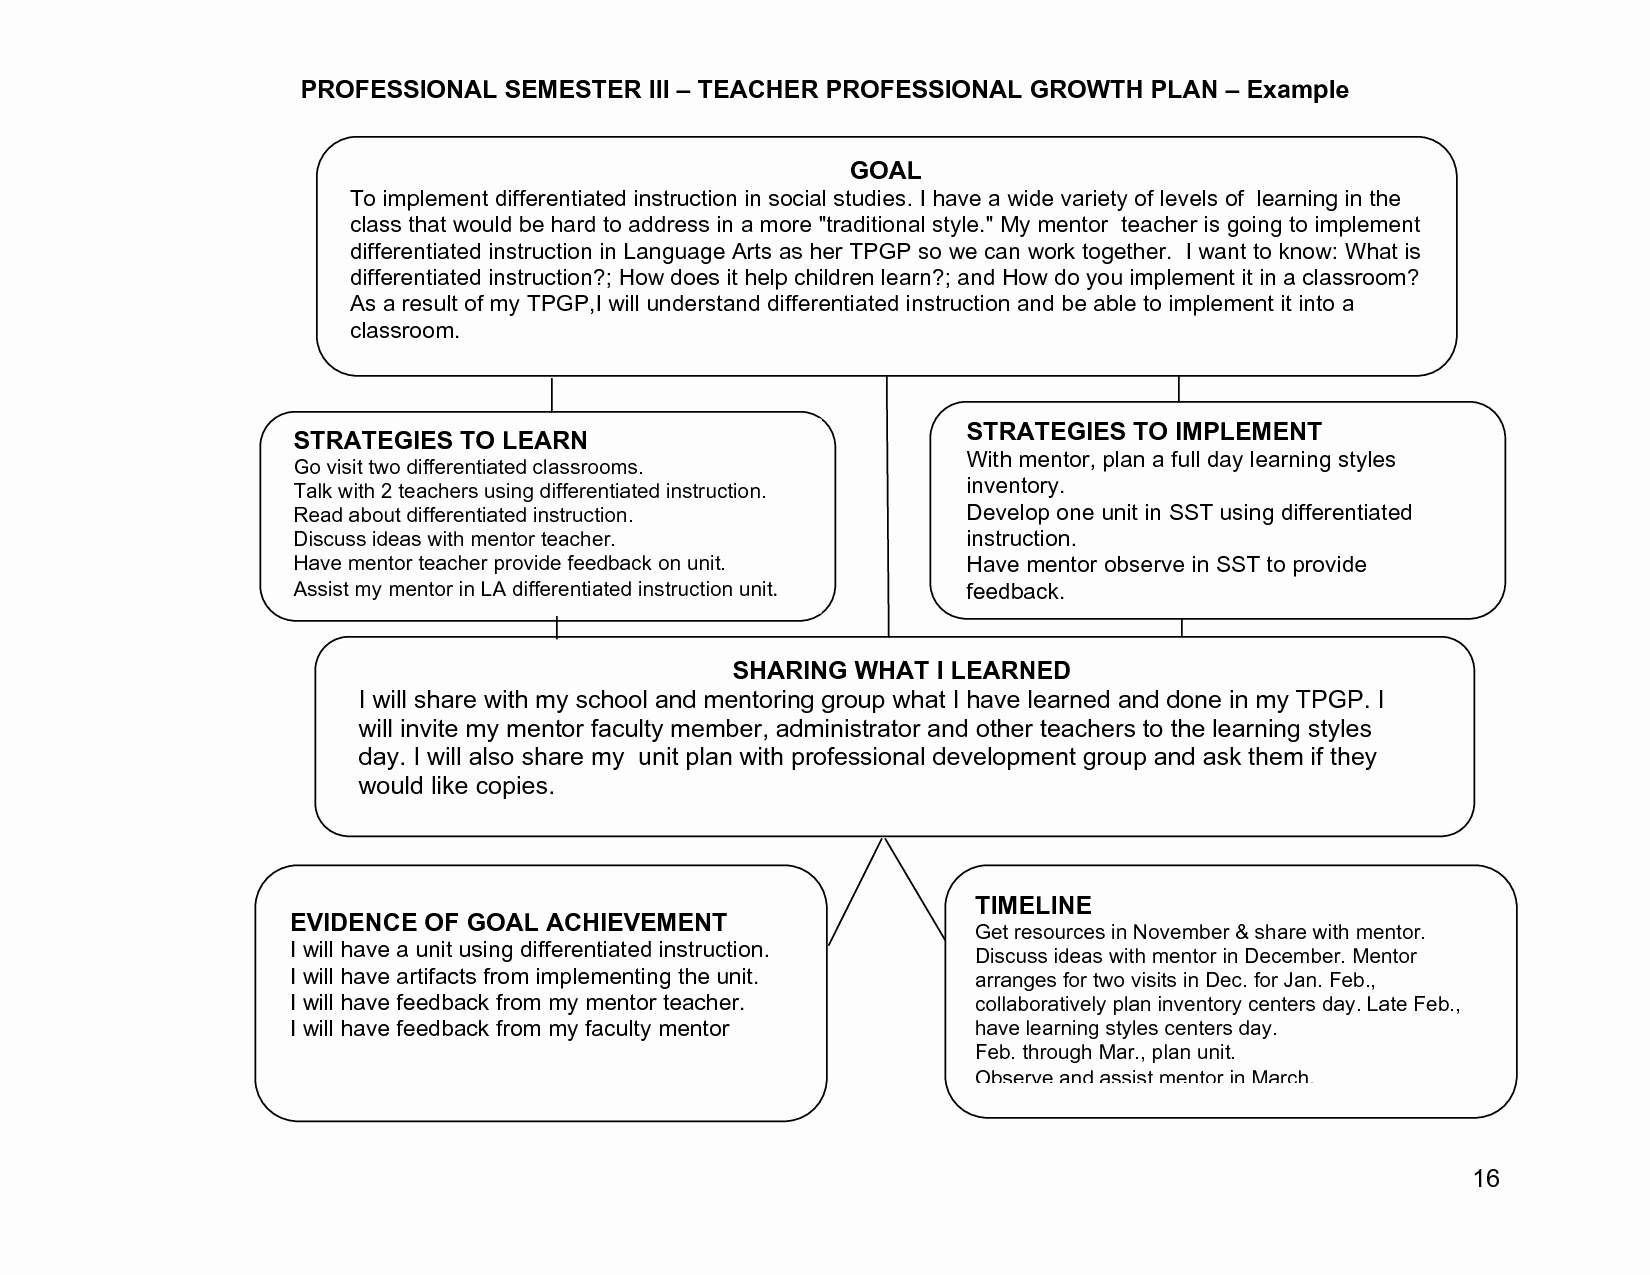 Professional Development Plan for Teachers Template New Learning Plans or Goals for Teachers